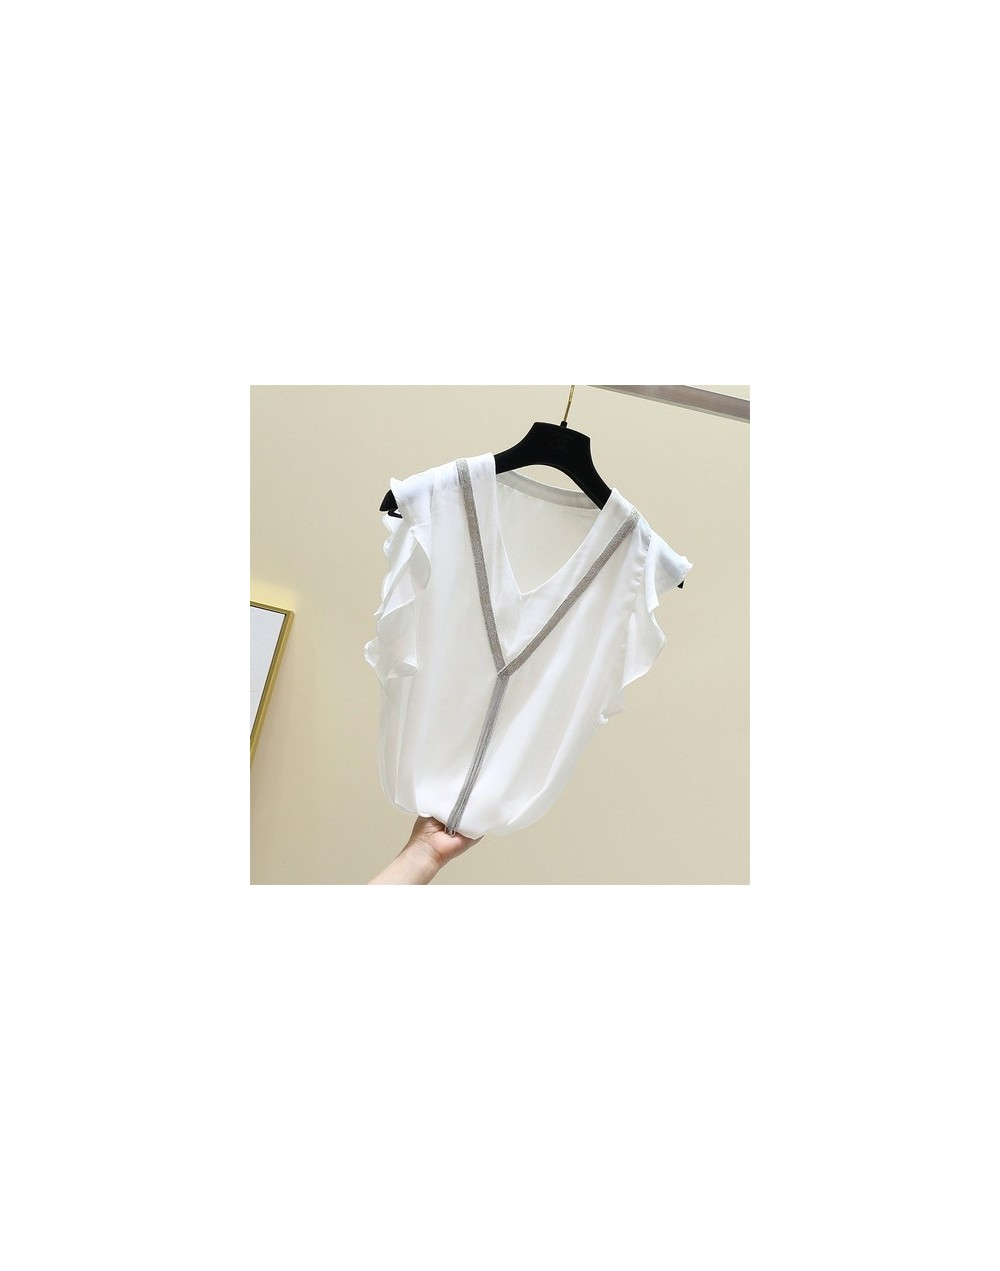 Summer Sweet Solid Chiffon Women Shirt V Neck Butterfly Sleeve Loose Slim Female Top Clothing 2019 Fashion New - white - 4G4...